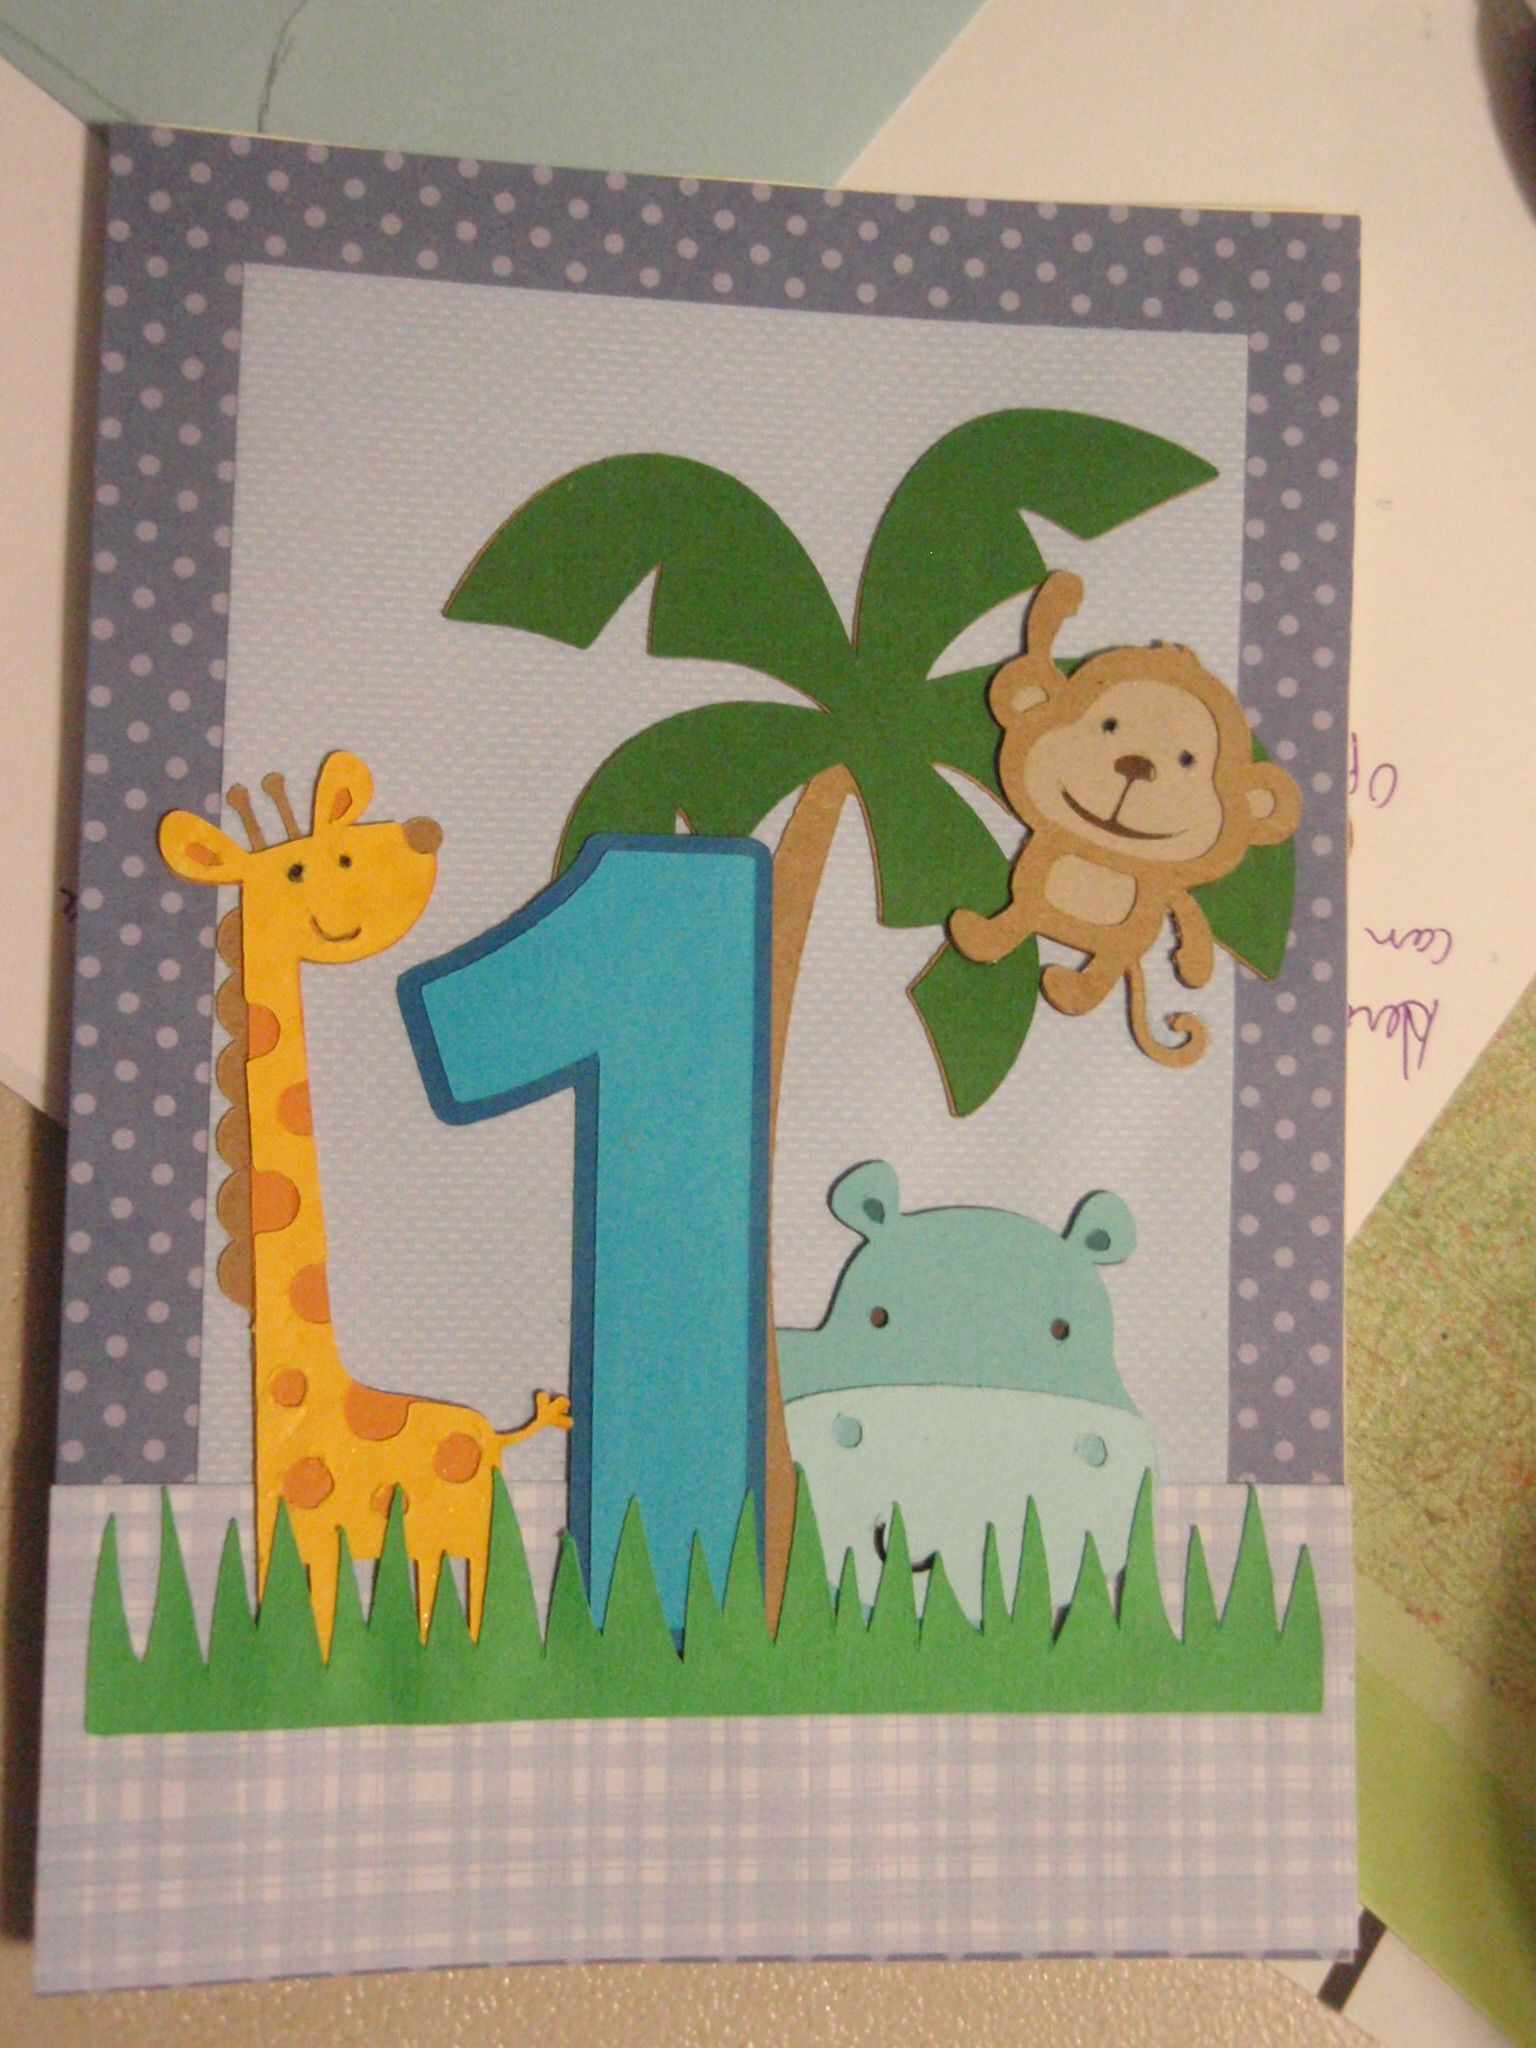 Bday Card For 1 Year Old Birthday Party Cards